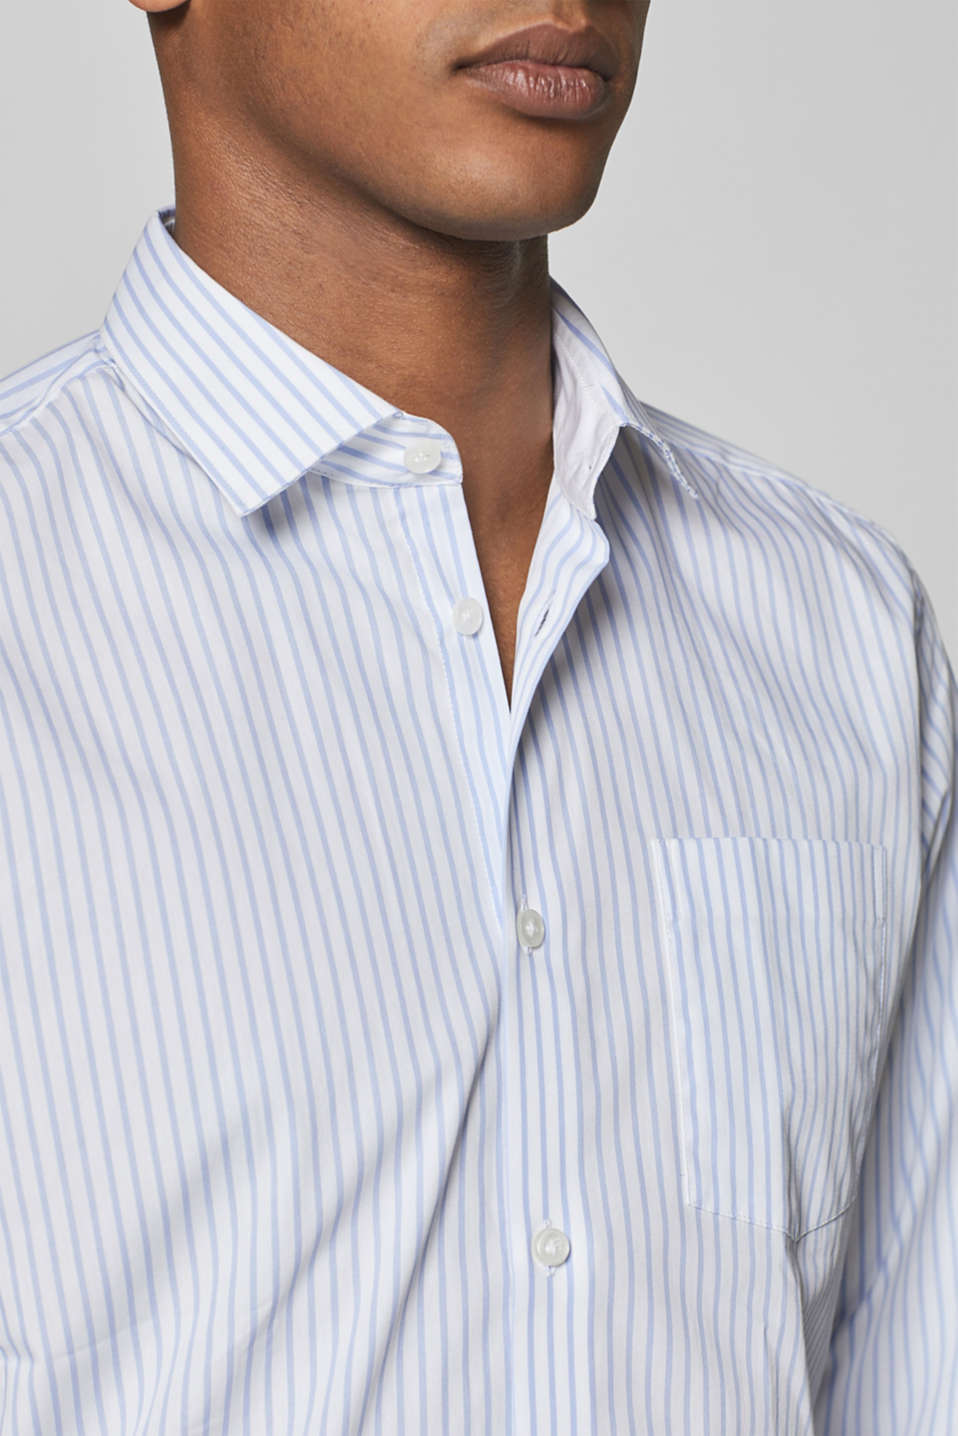 Shirts woven Slim fit, WHITE, detail image number 2